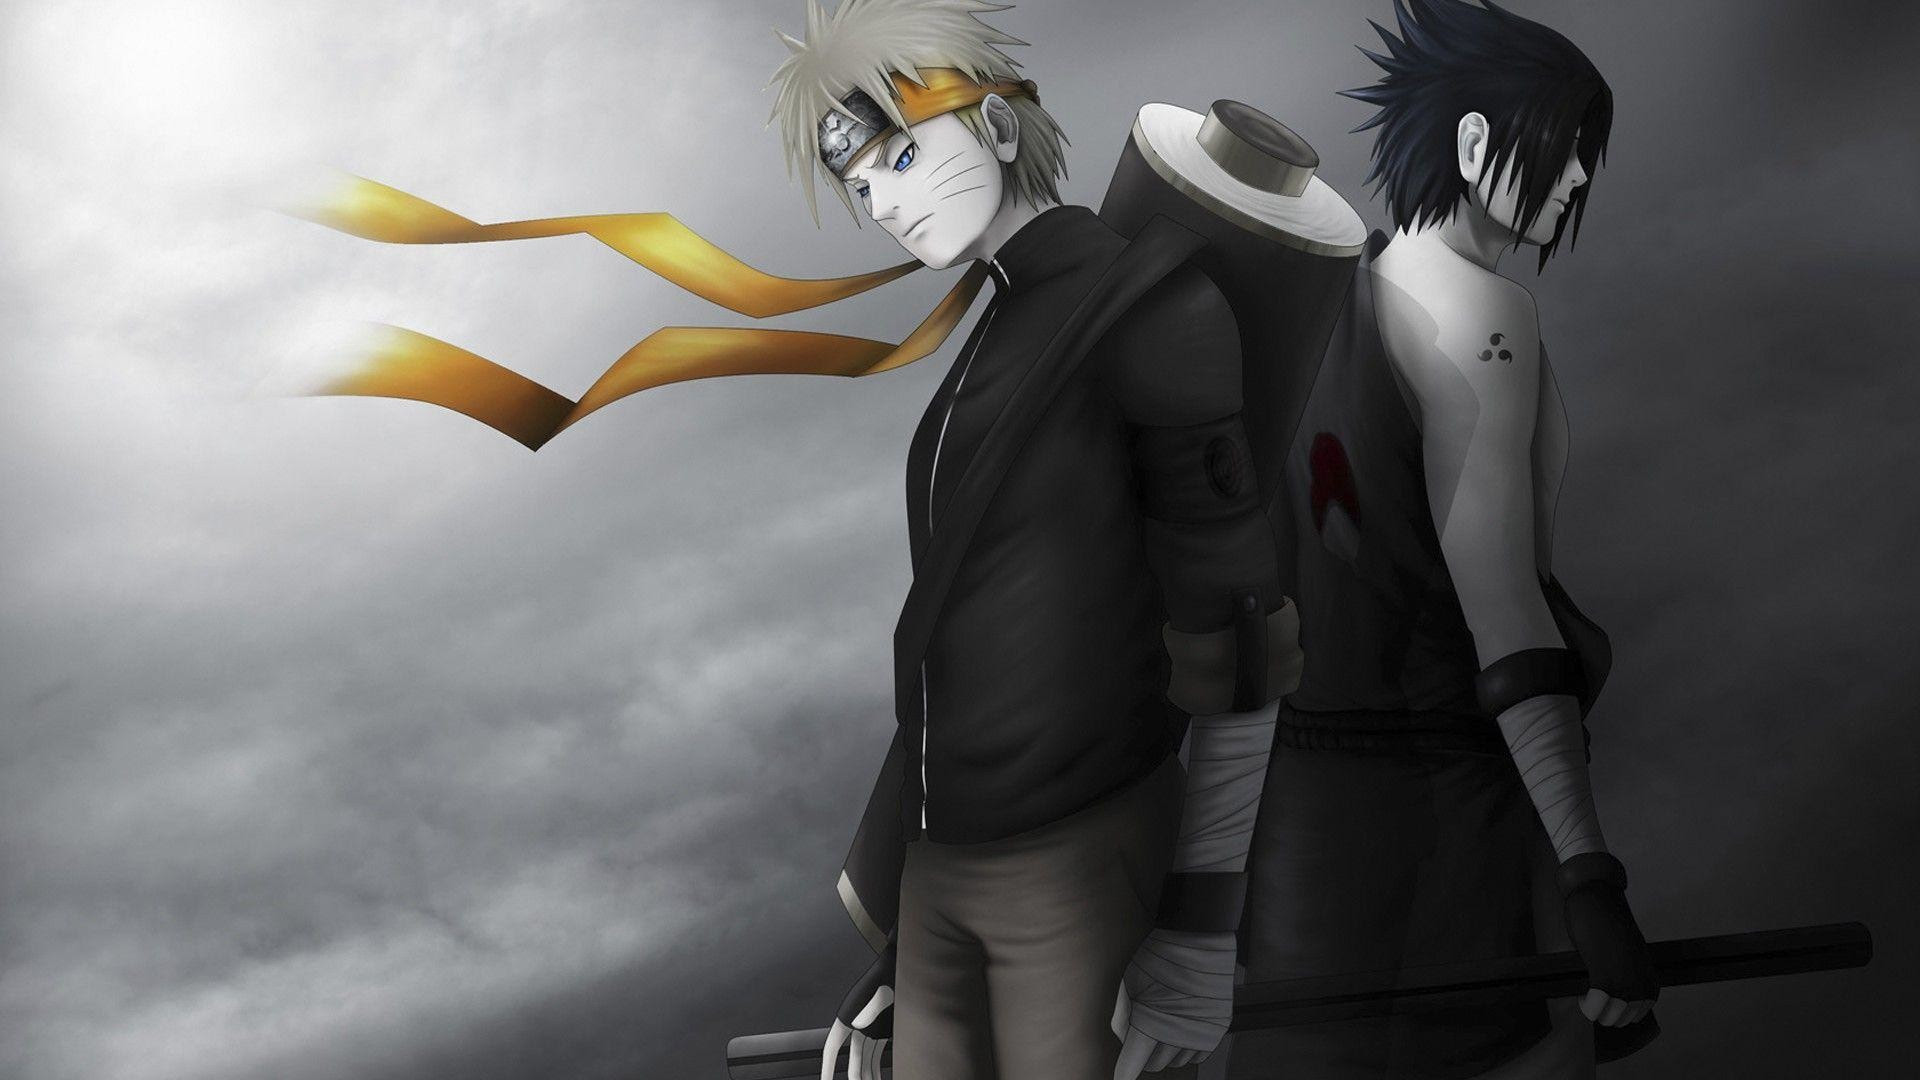 Download 300 Wallpaper Hp Naruto Hd HD